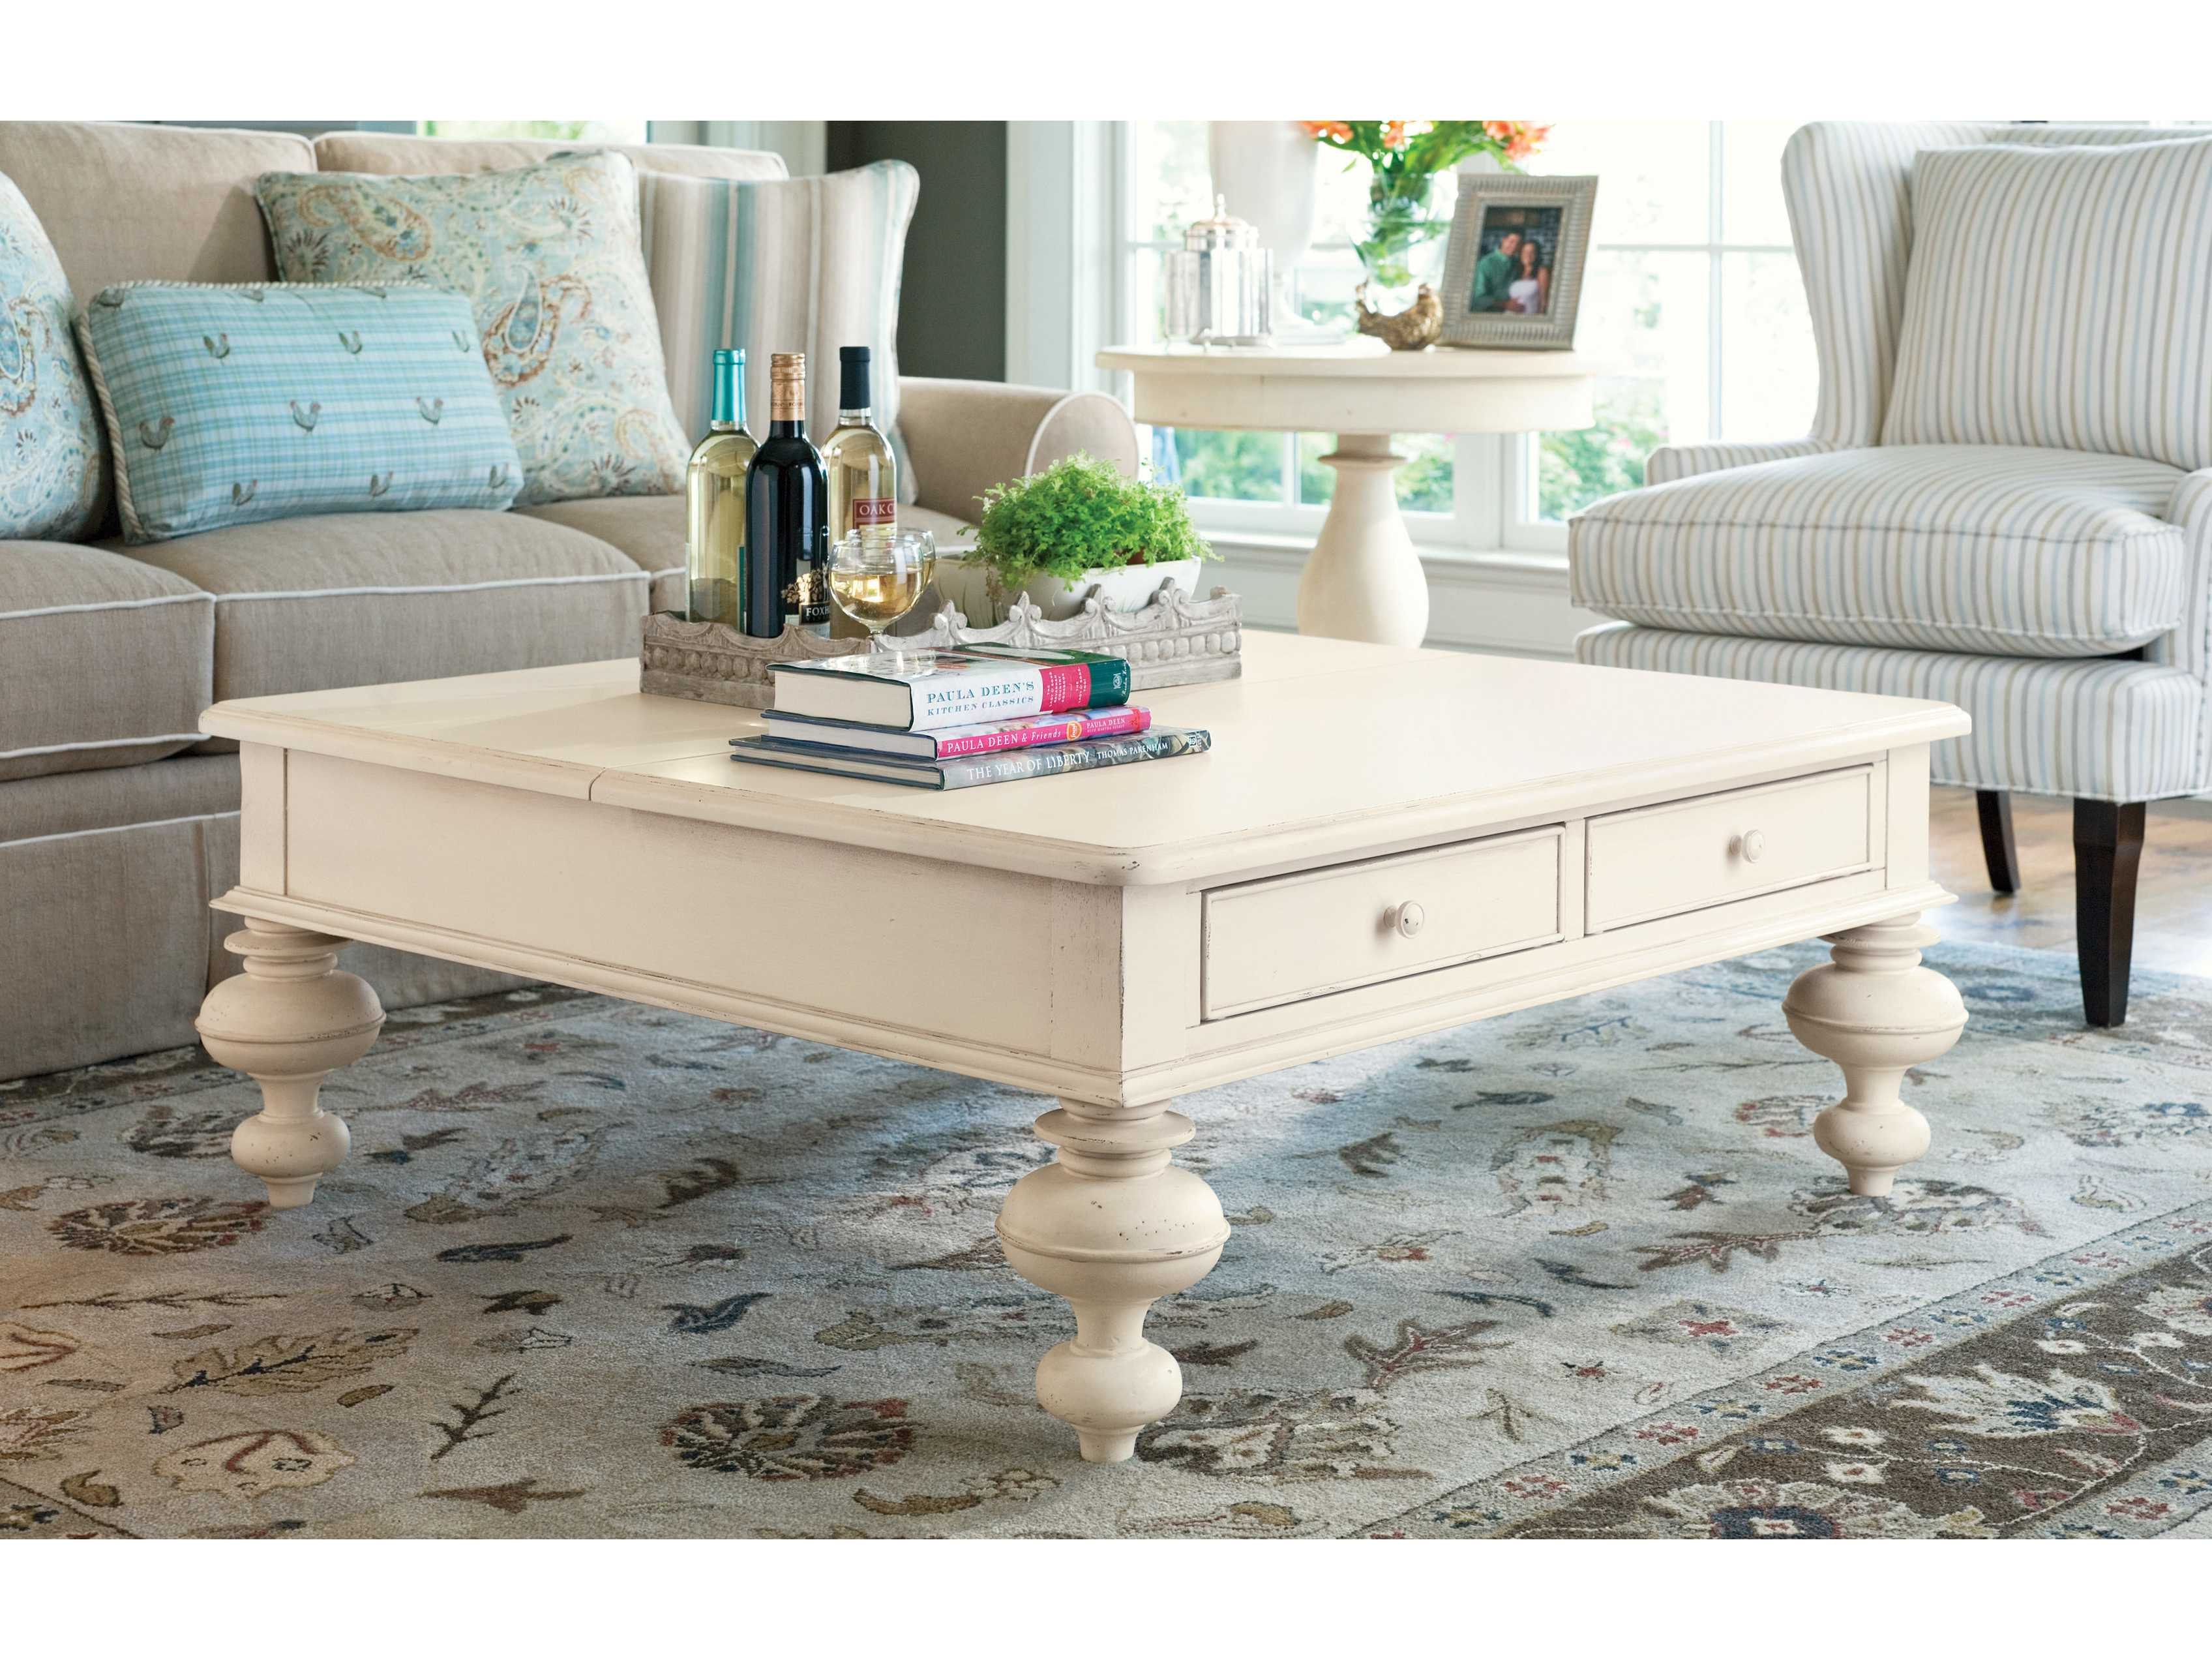 Paula Deen Home Linen 44 Square Put Your Feet Up Coffee Table inside size 3392 X 2545